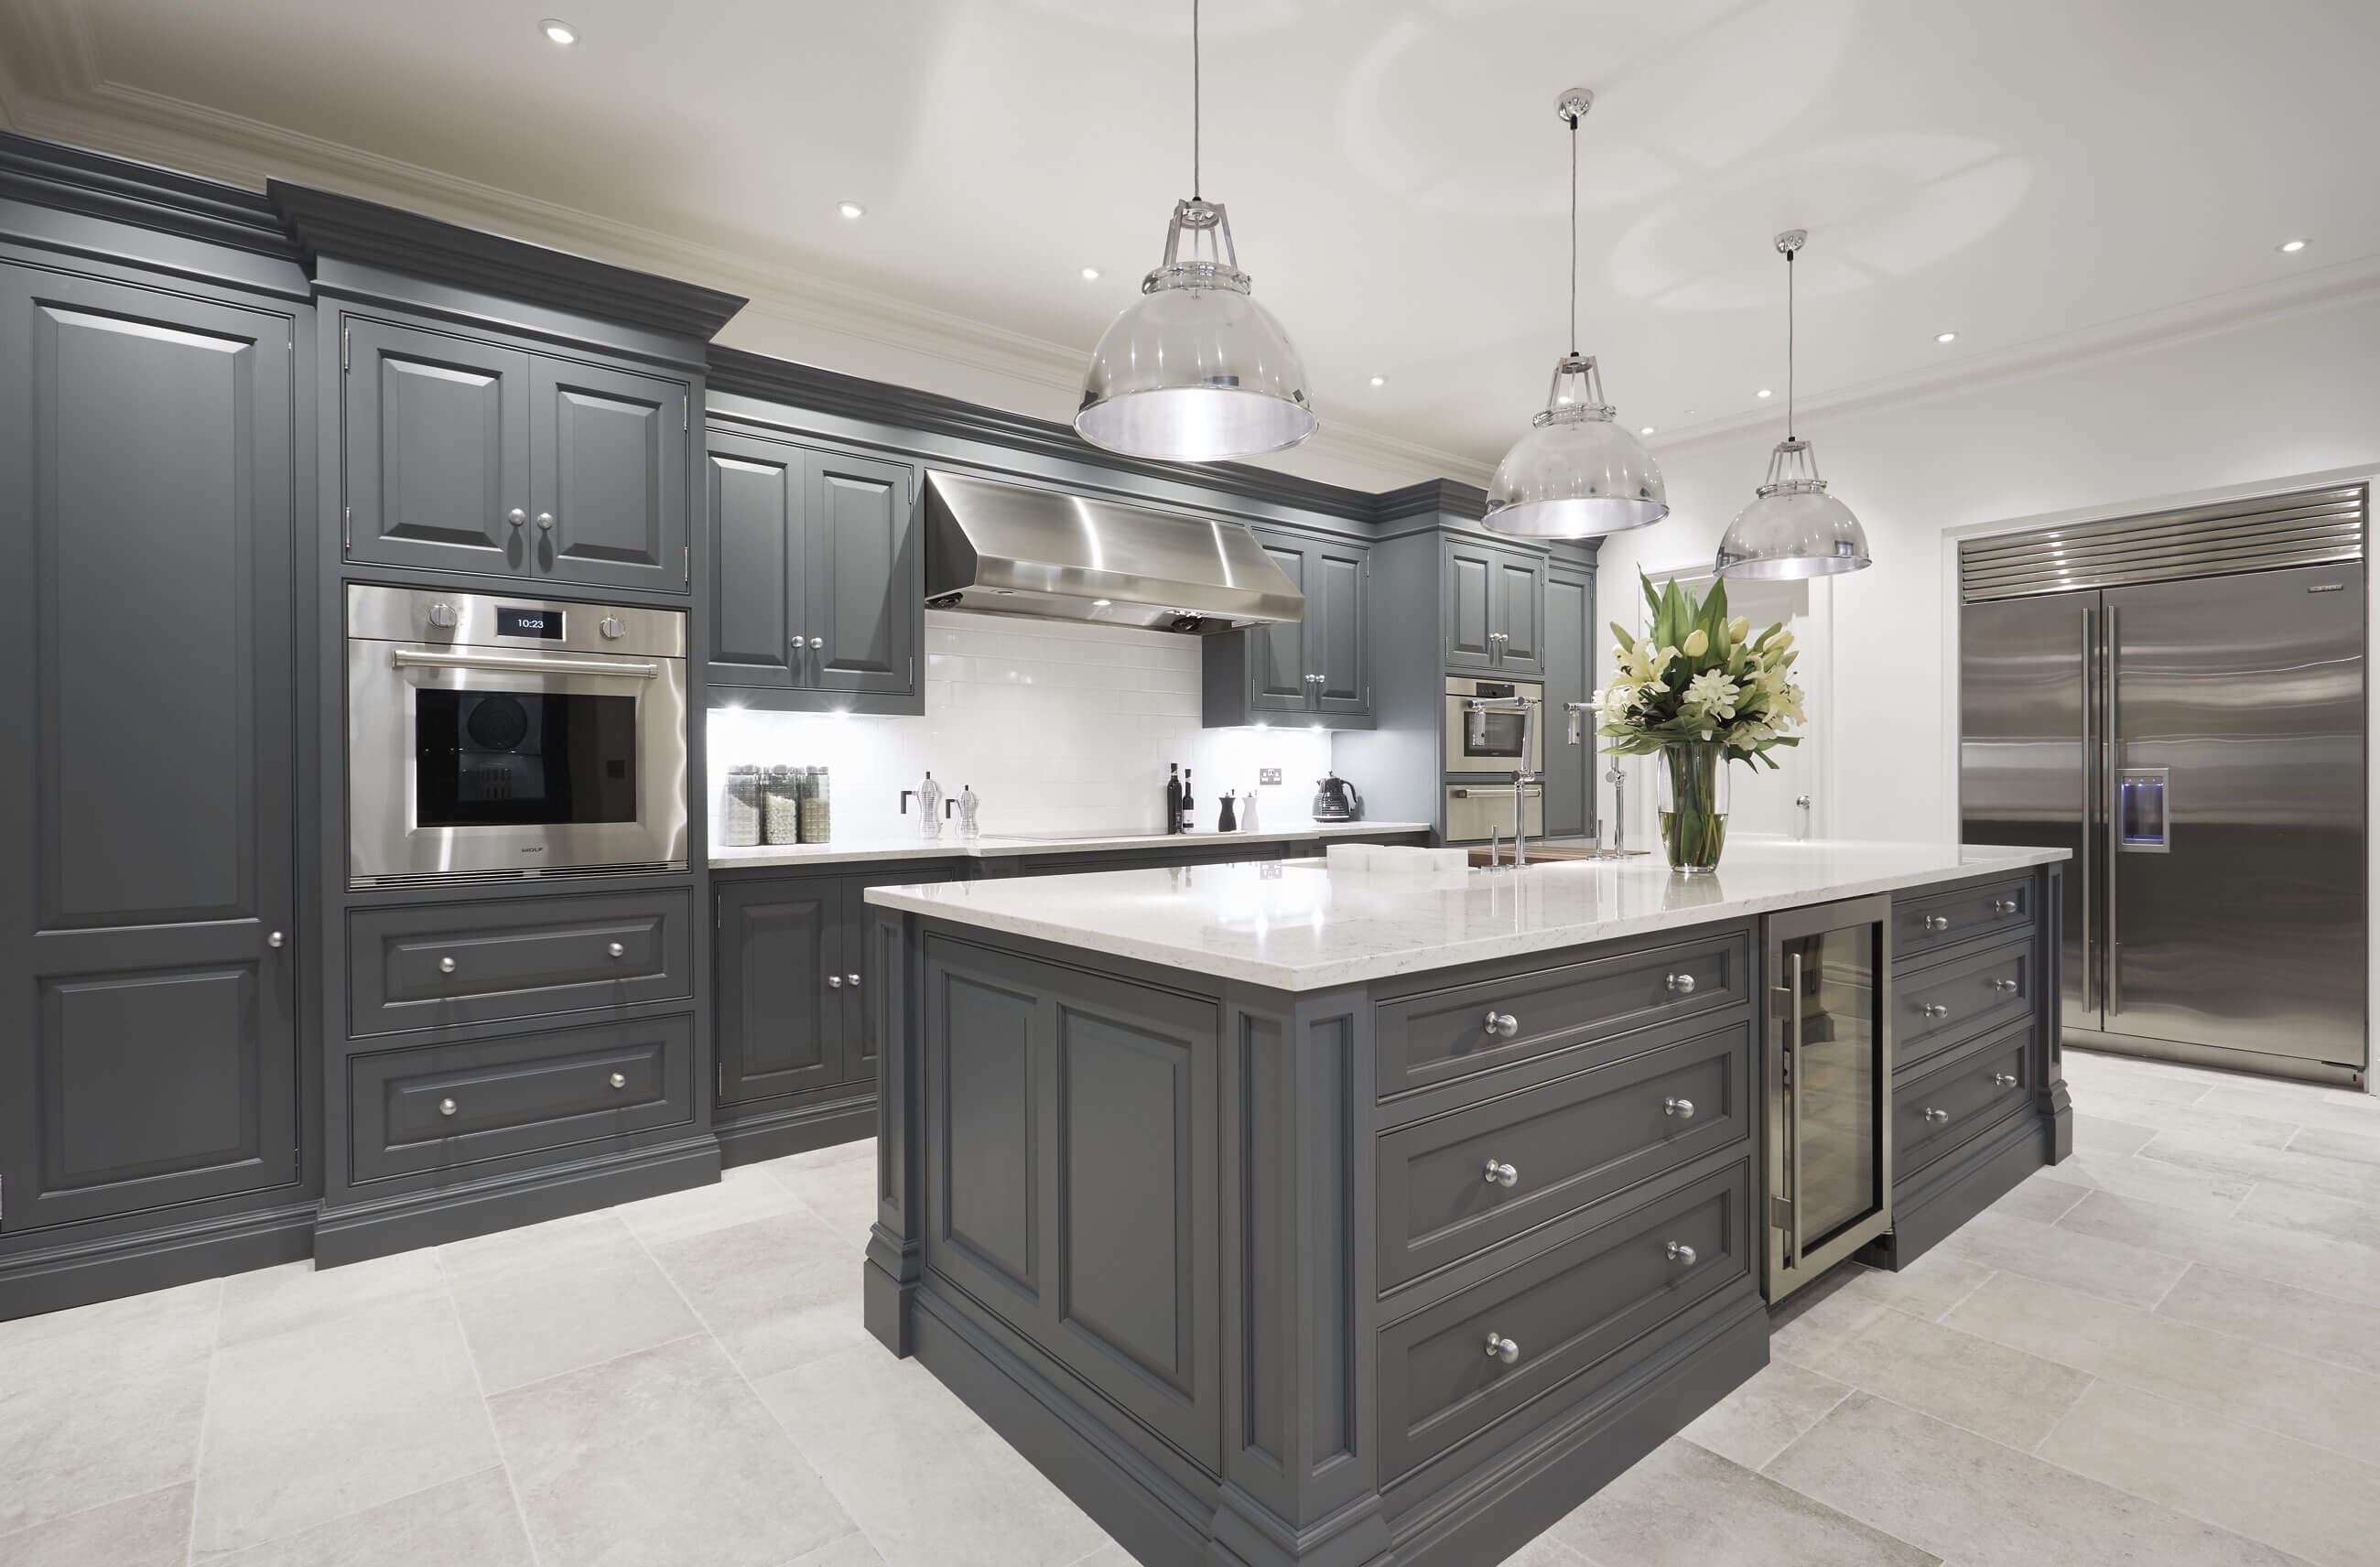 Luxury grey kitchen tom howley - Luxury kitchen cabinets ...